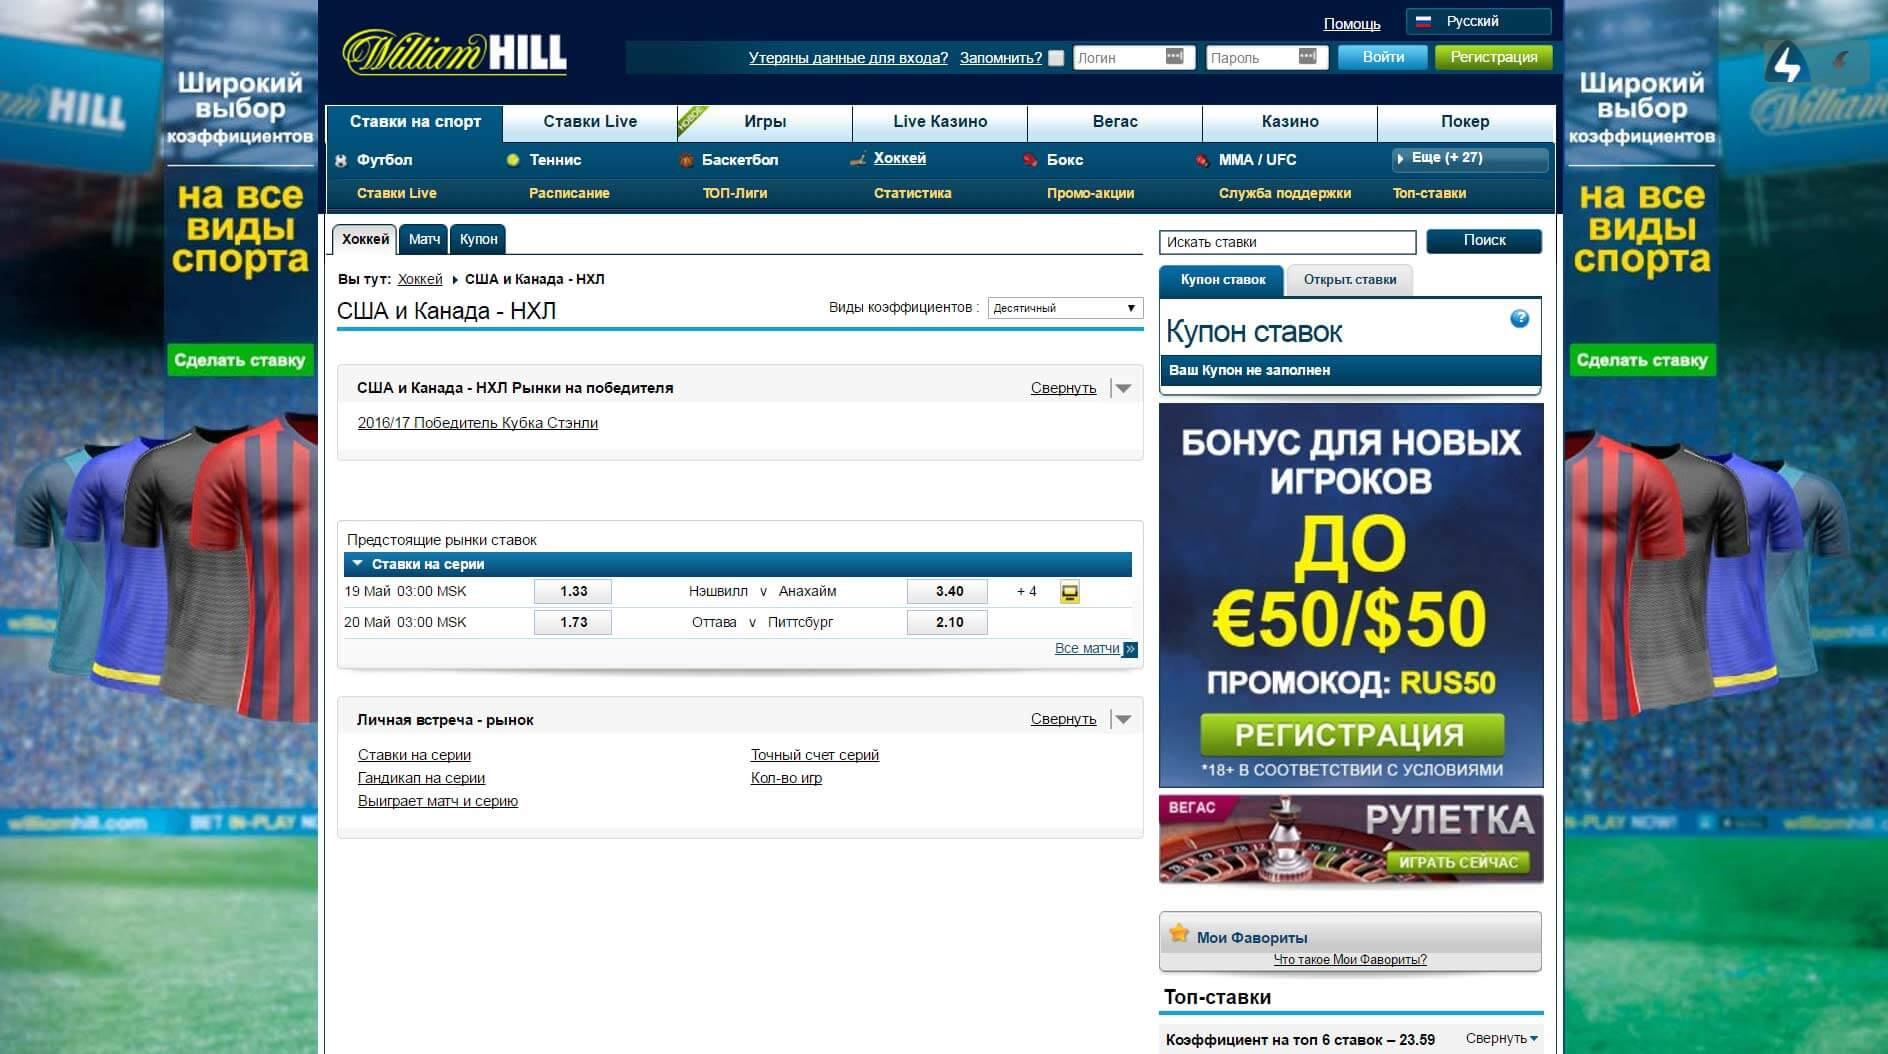 william hill зеркало сайта